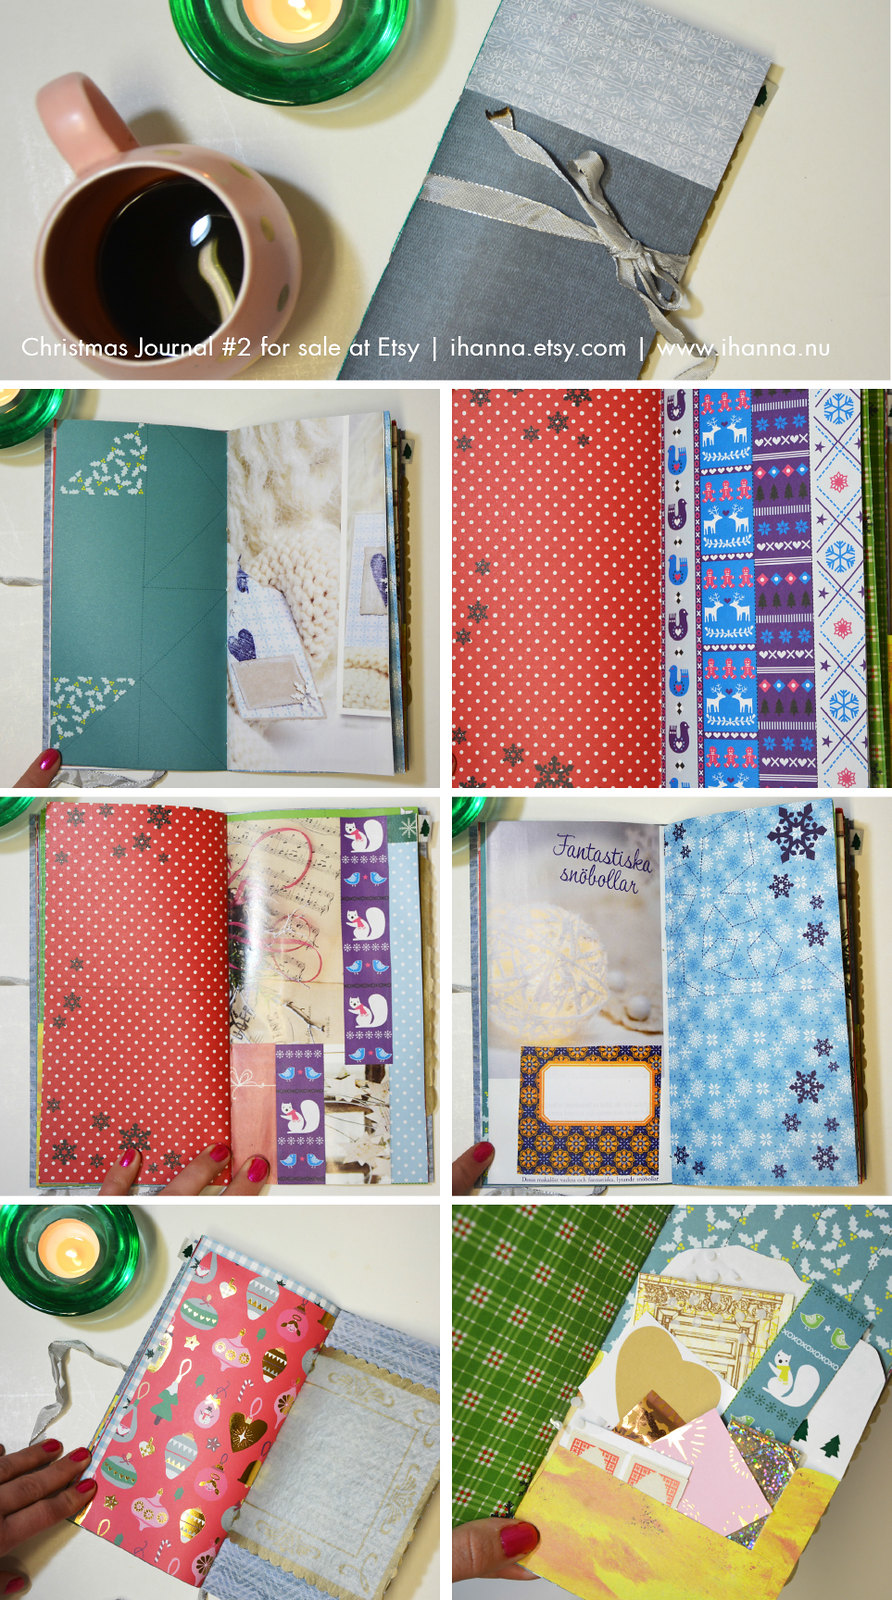 Spread in Christmas Junk Journal no 2 hand made by iHanna and now sold #christmasjournal